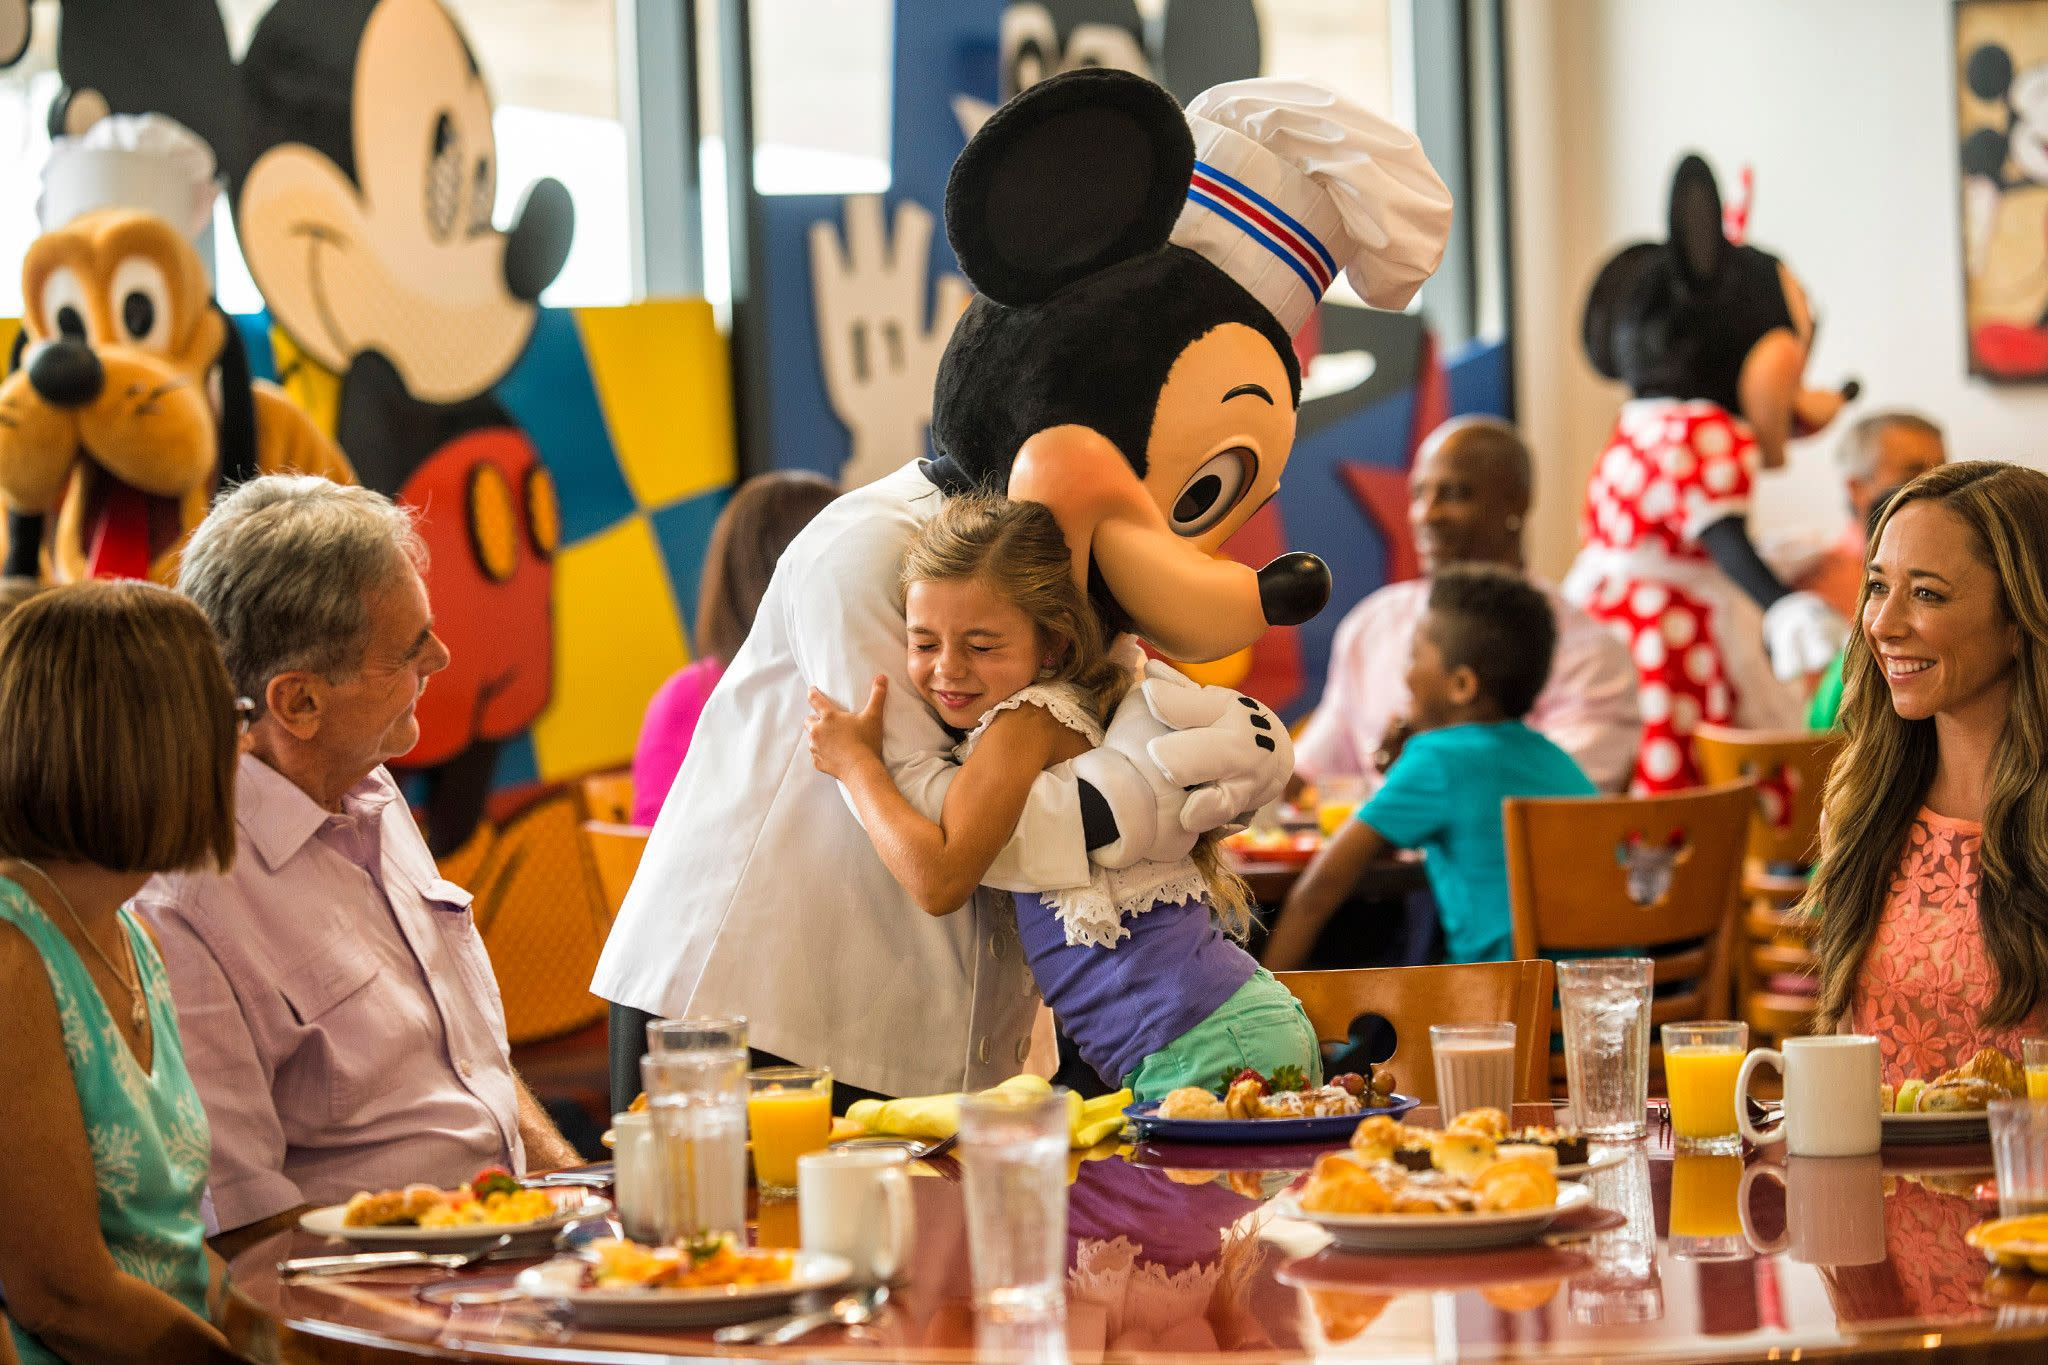 Fun Time Buffet at Chef Mickey's at Disney's Contemporary Resort in Orlando